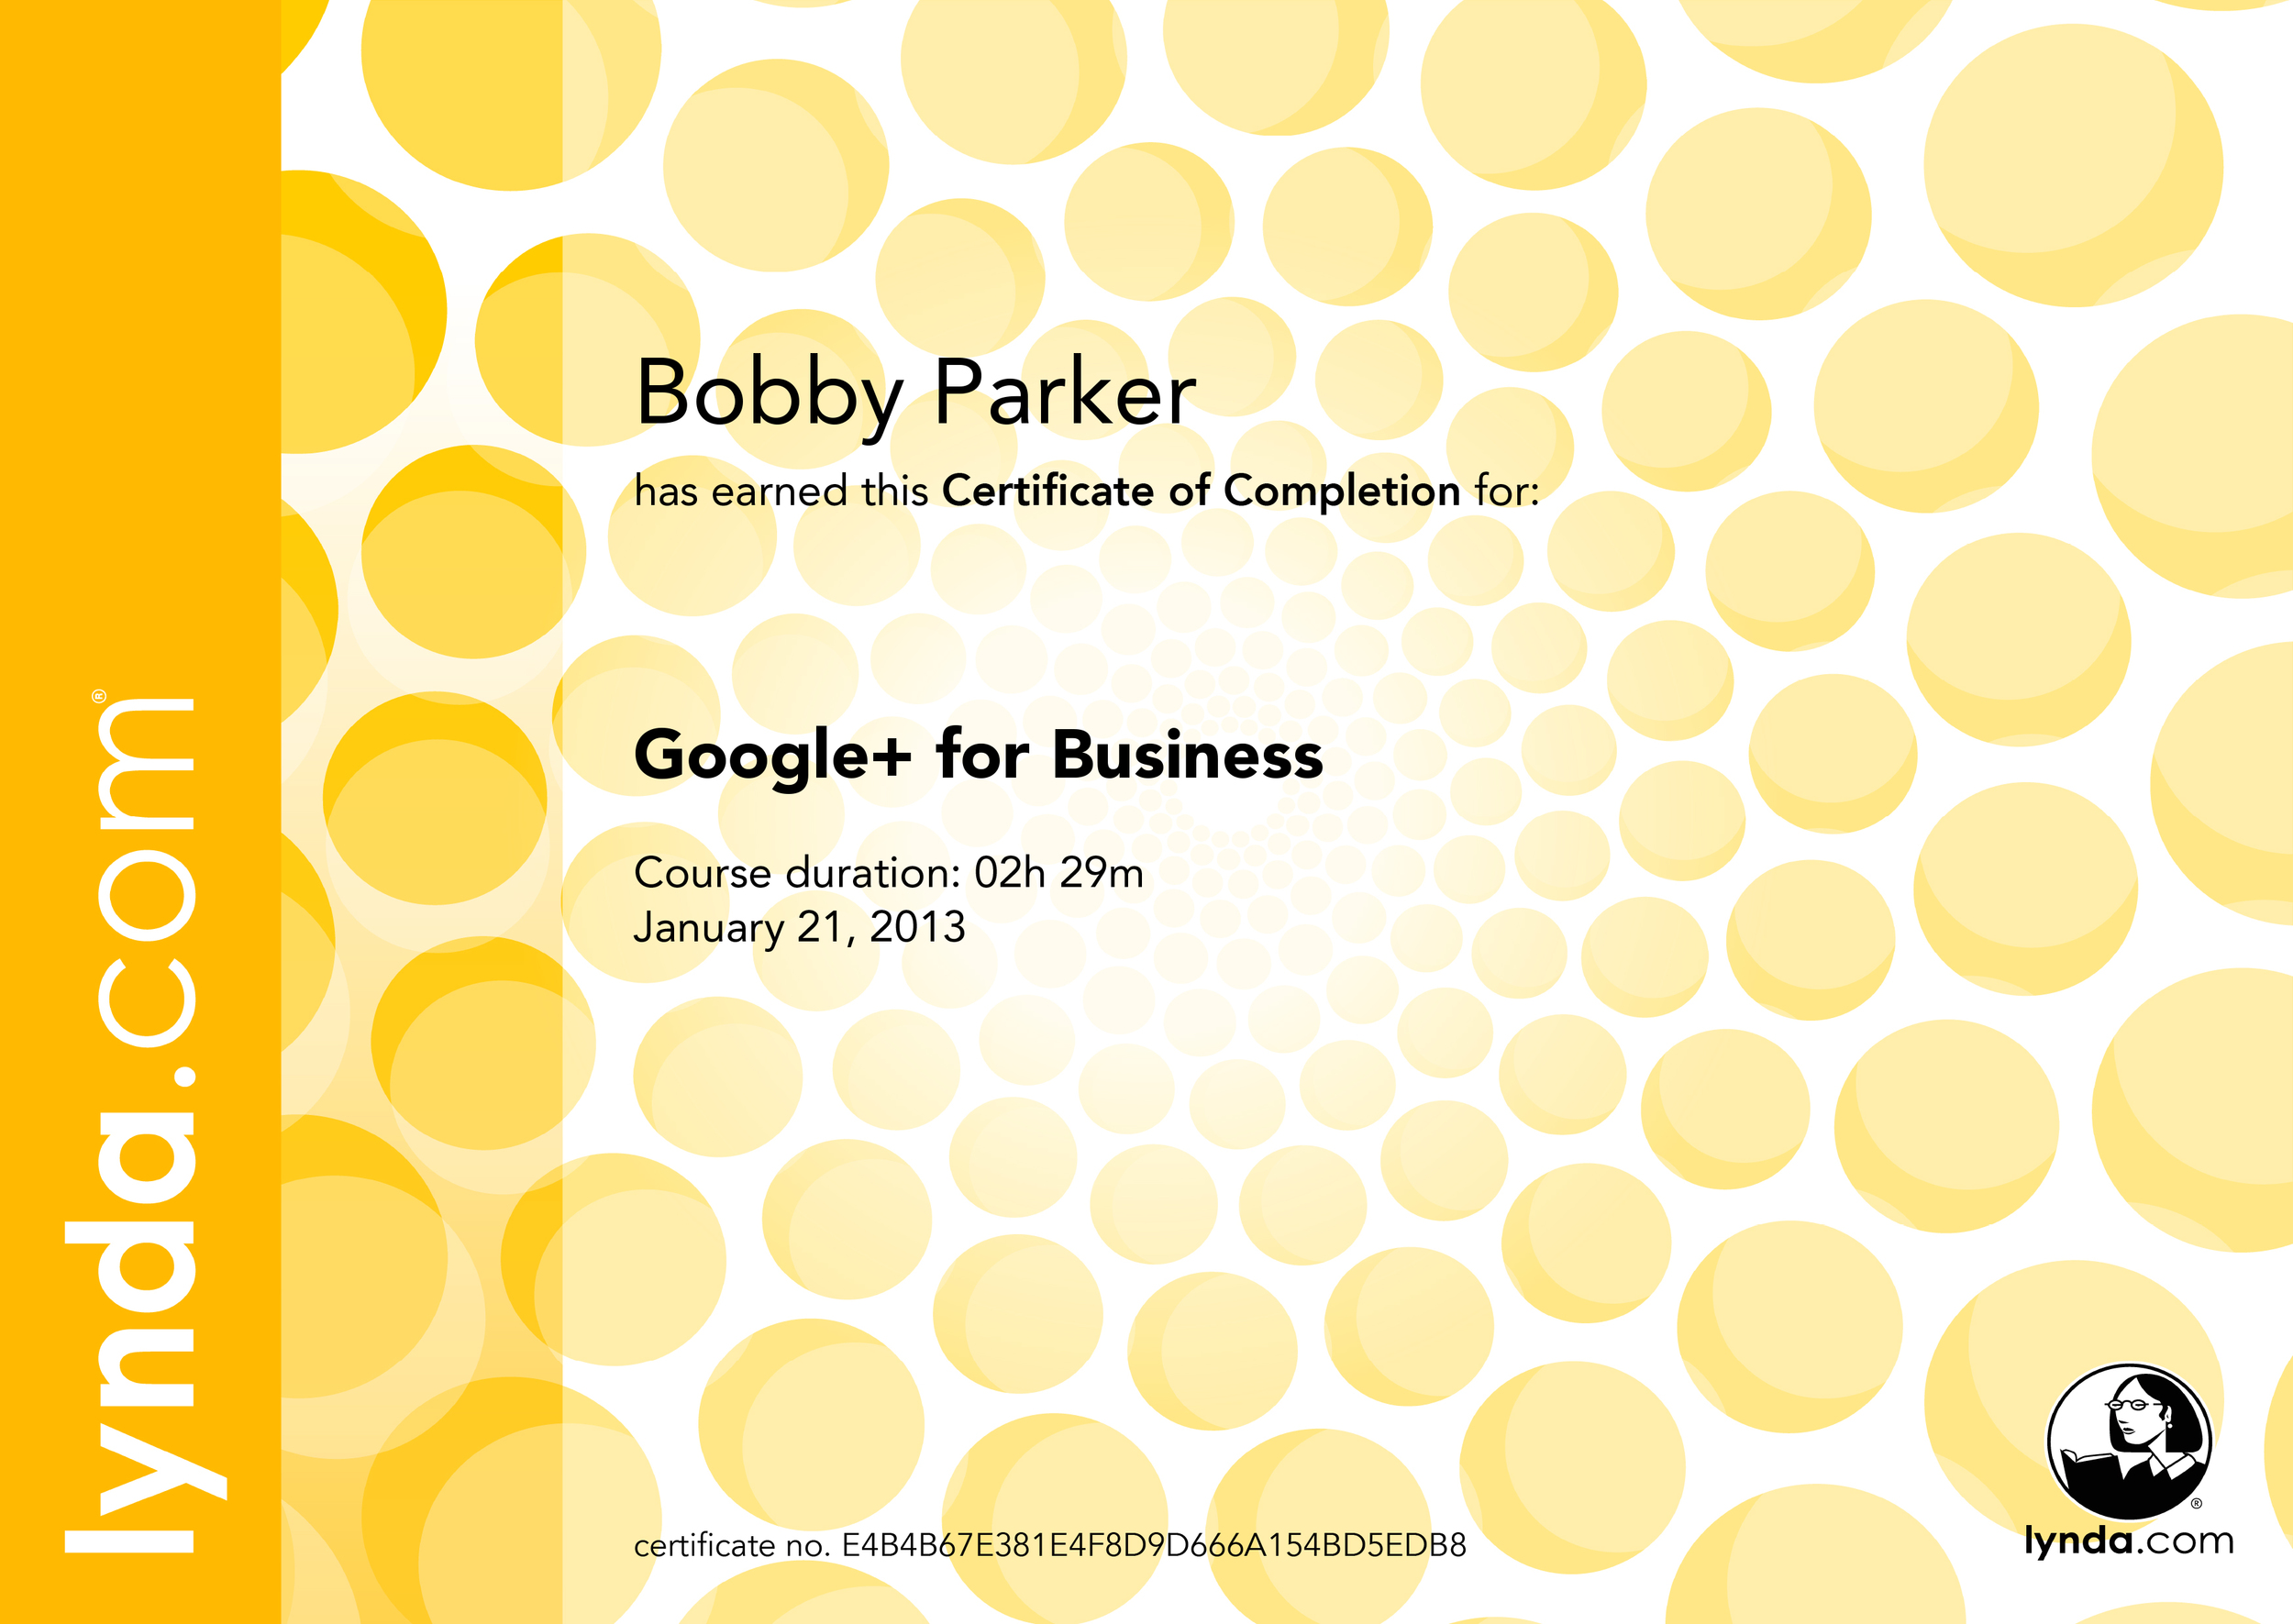 Google+forBusiness_CertificateOfCompletion.jpg